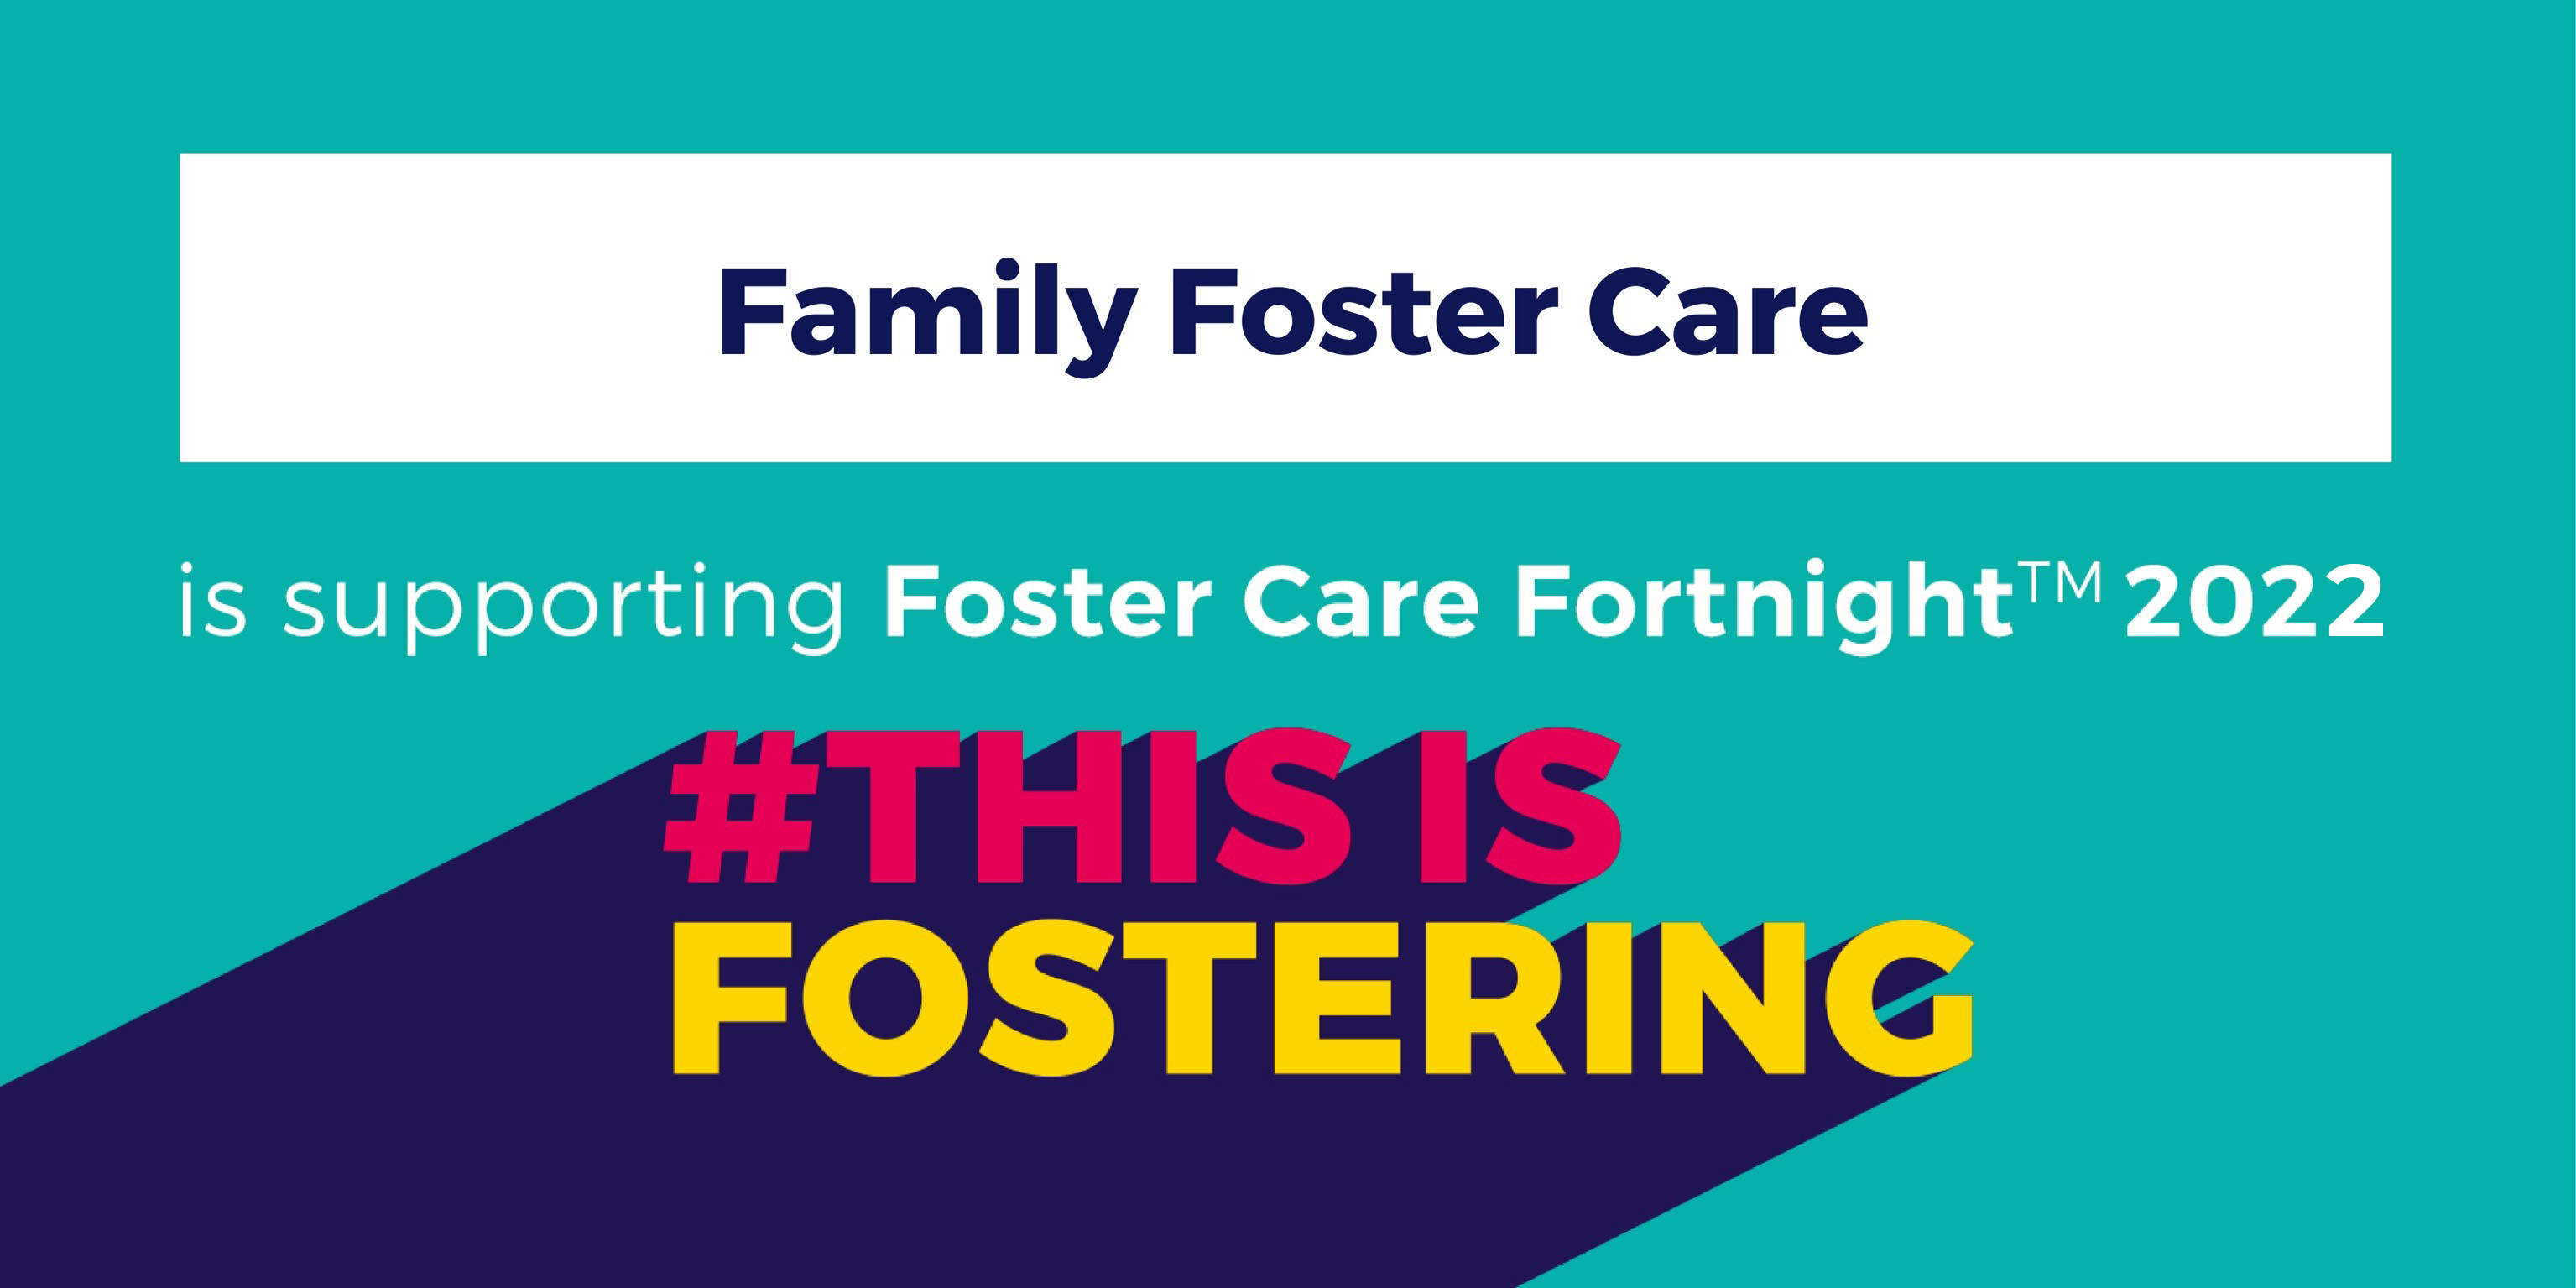 Fostercare Fortnight